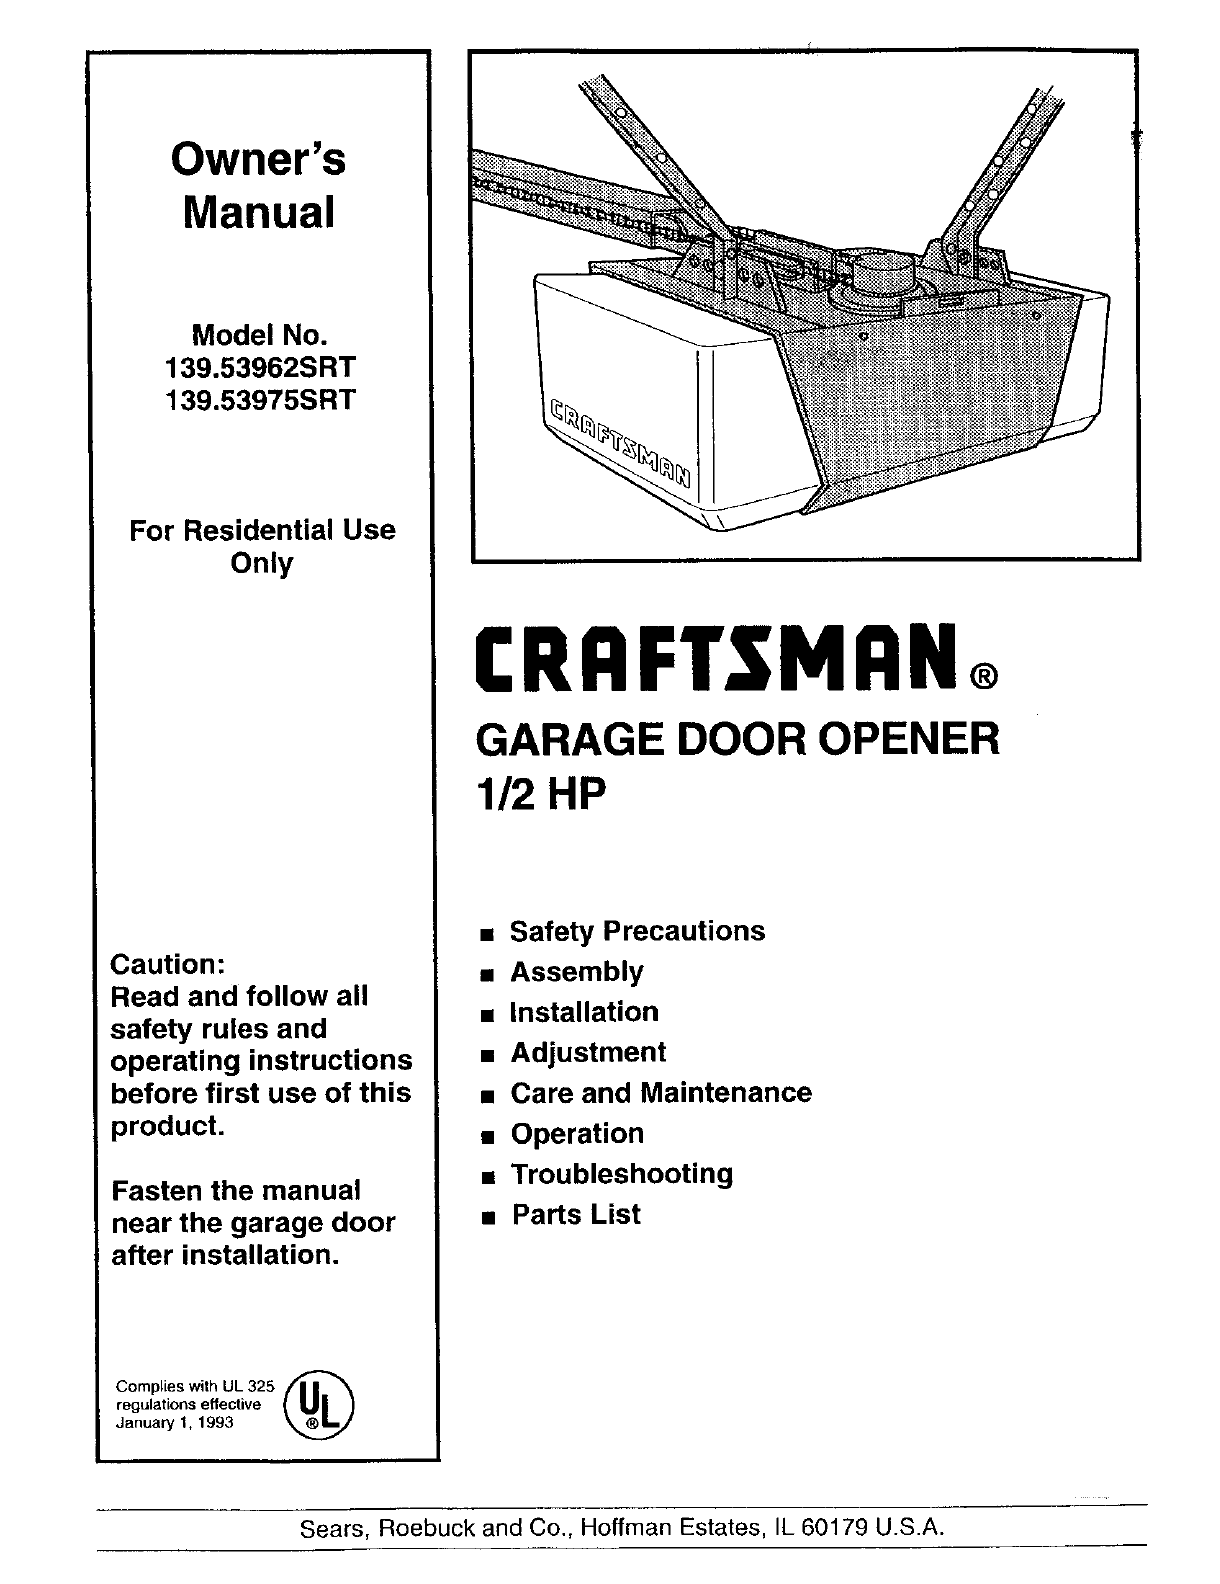 Craftsman Garage Door Opener 139.53975SRT User Guide